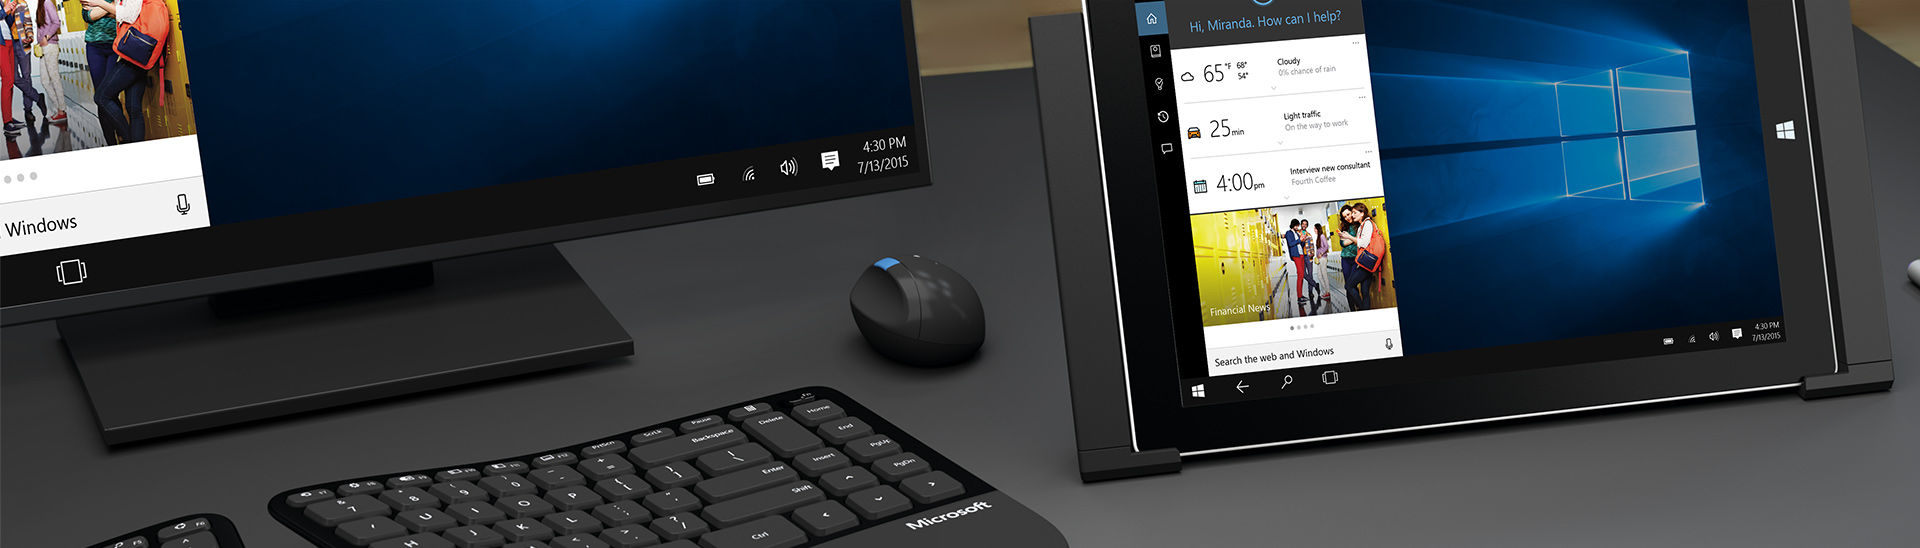 Promotional image of Microsoft desktop, keyboard, mouse, and tablet